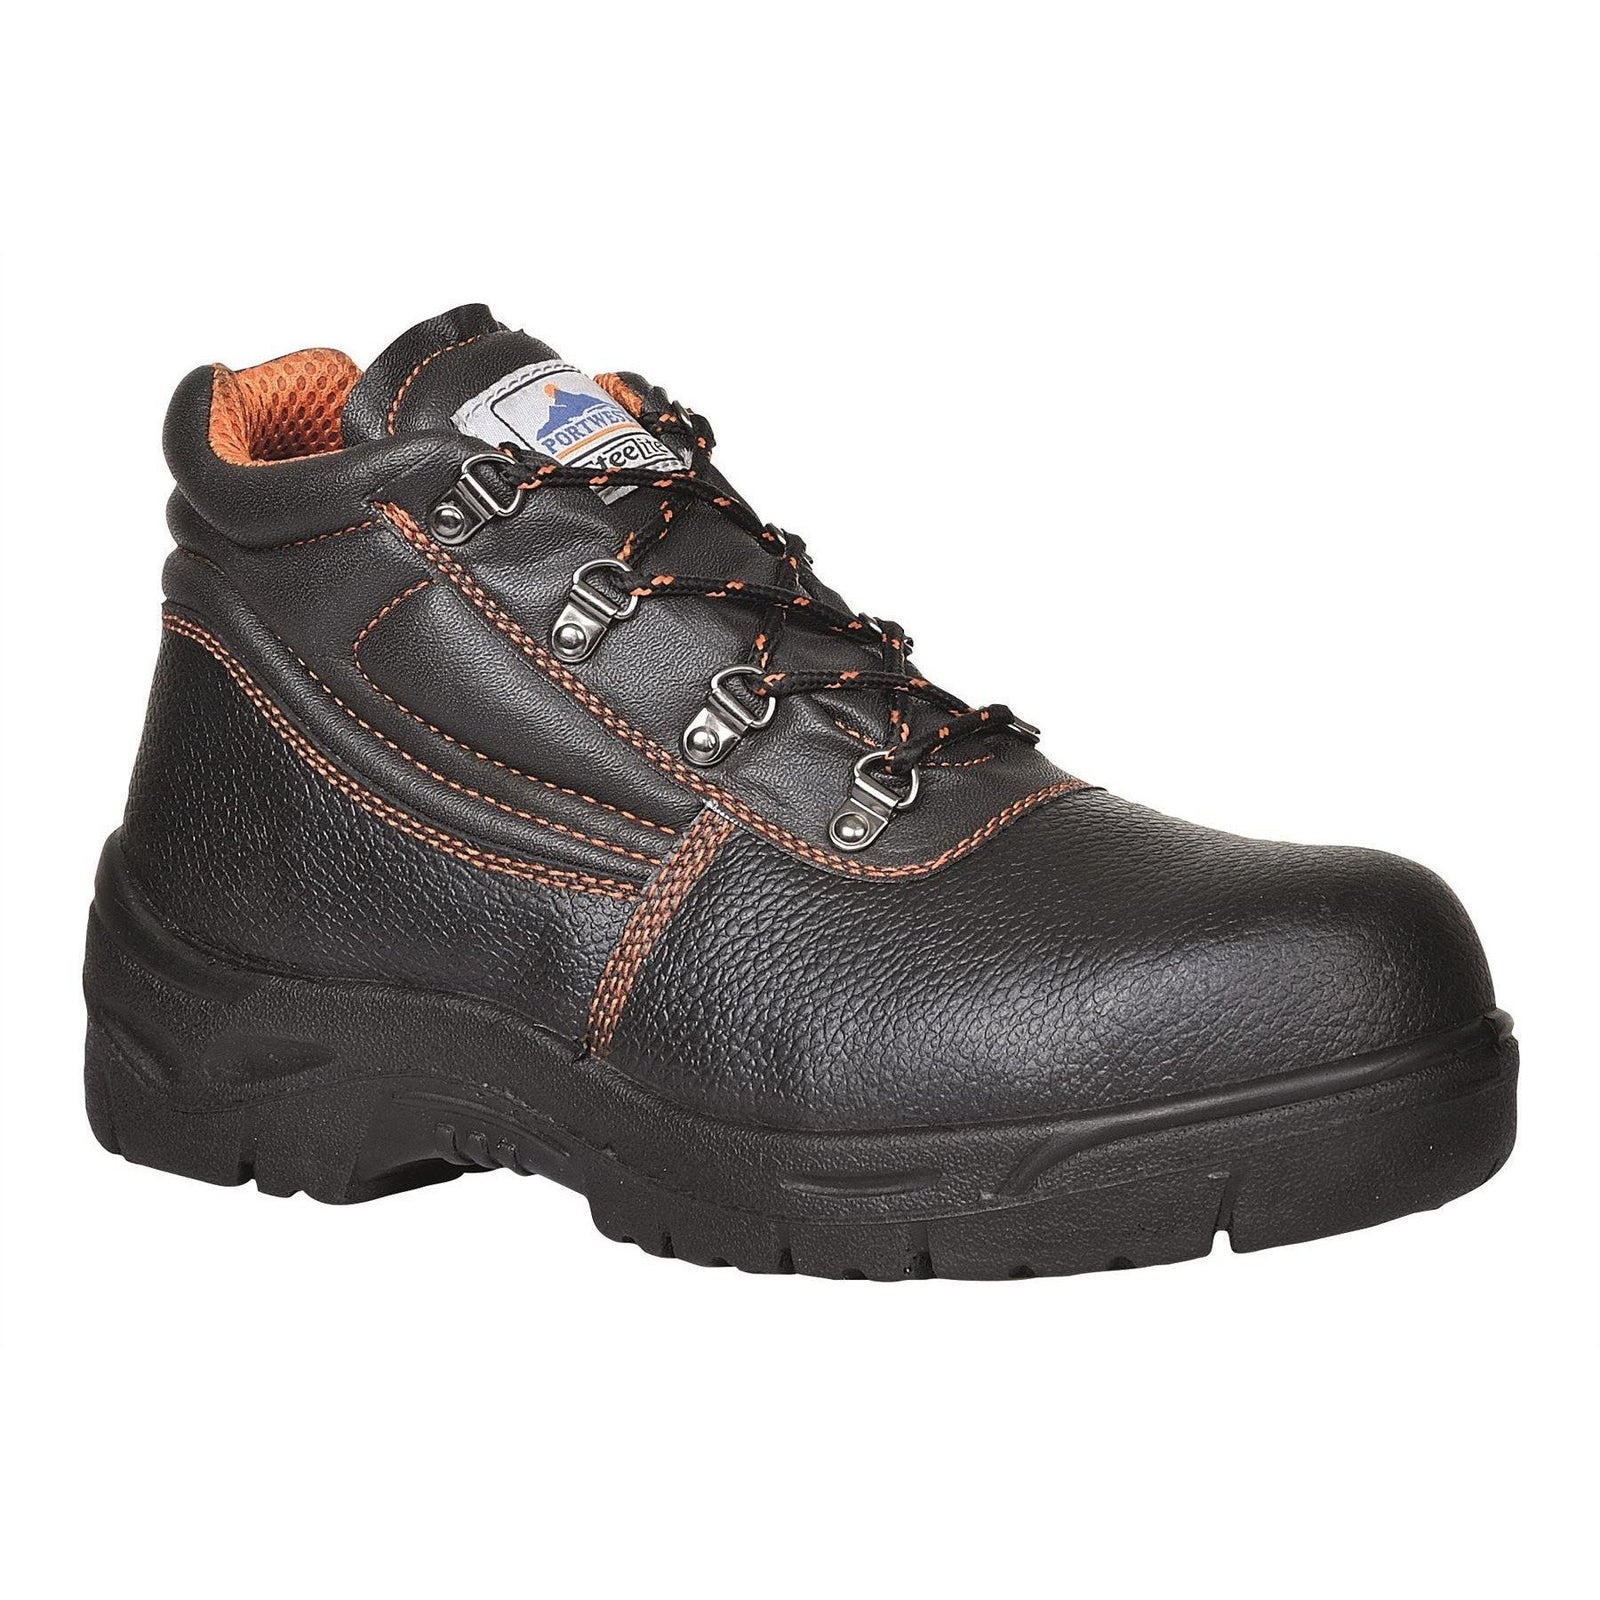 Portwest Steelite Ultra Safety Boot S1P FW87 - reid outdoors